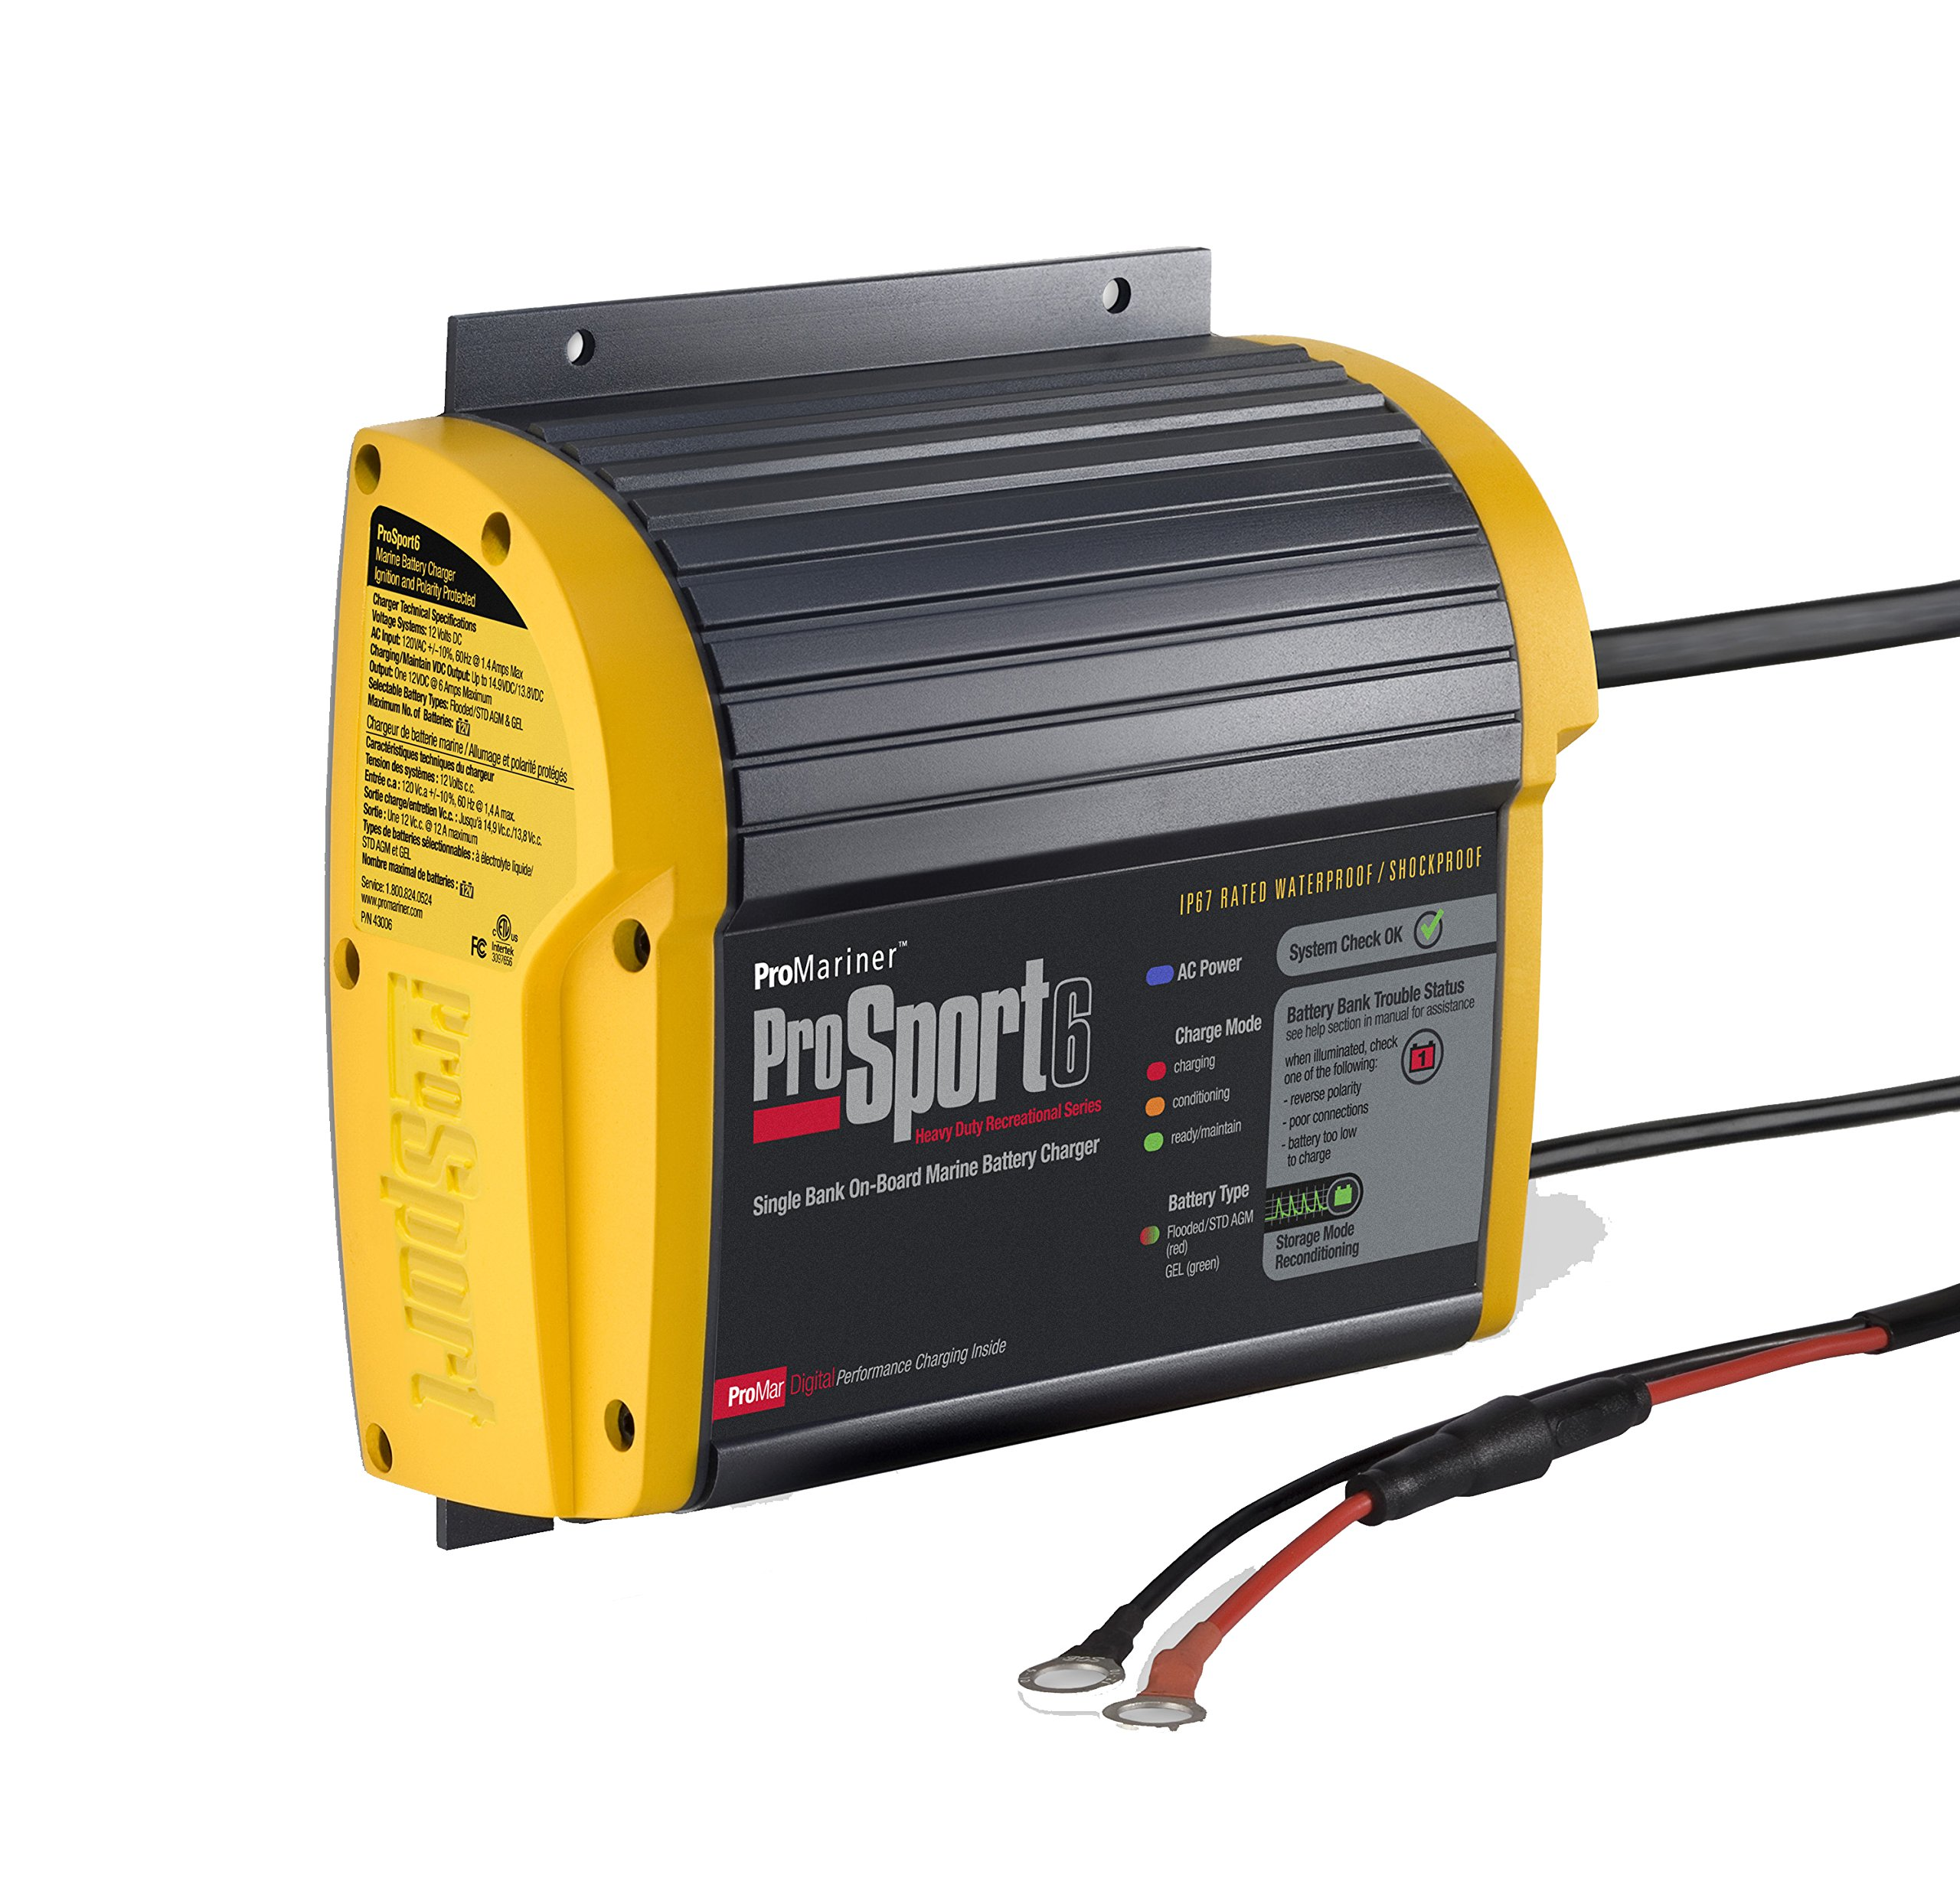 ProMariner Prosport 6 Battery Charger, 6 Amp, 12V,